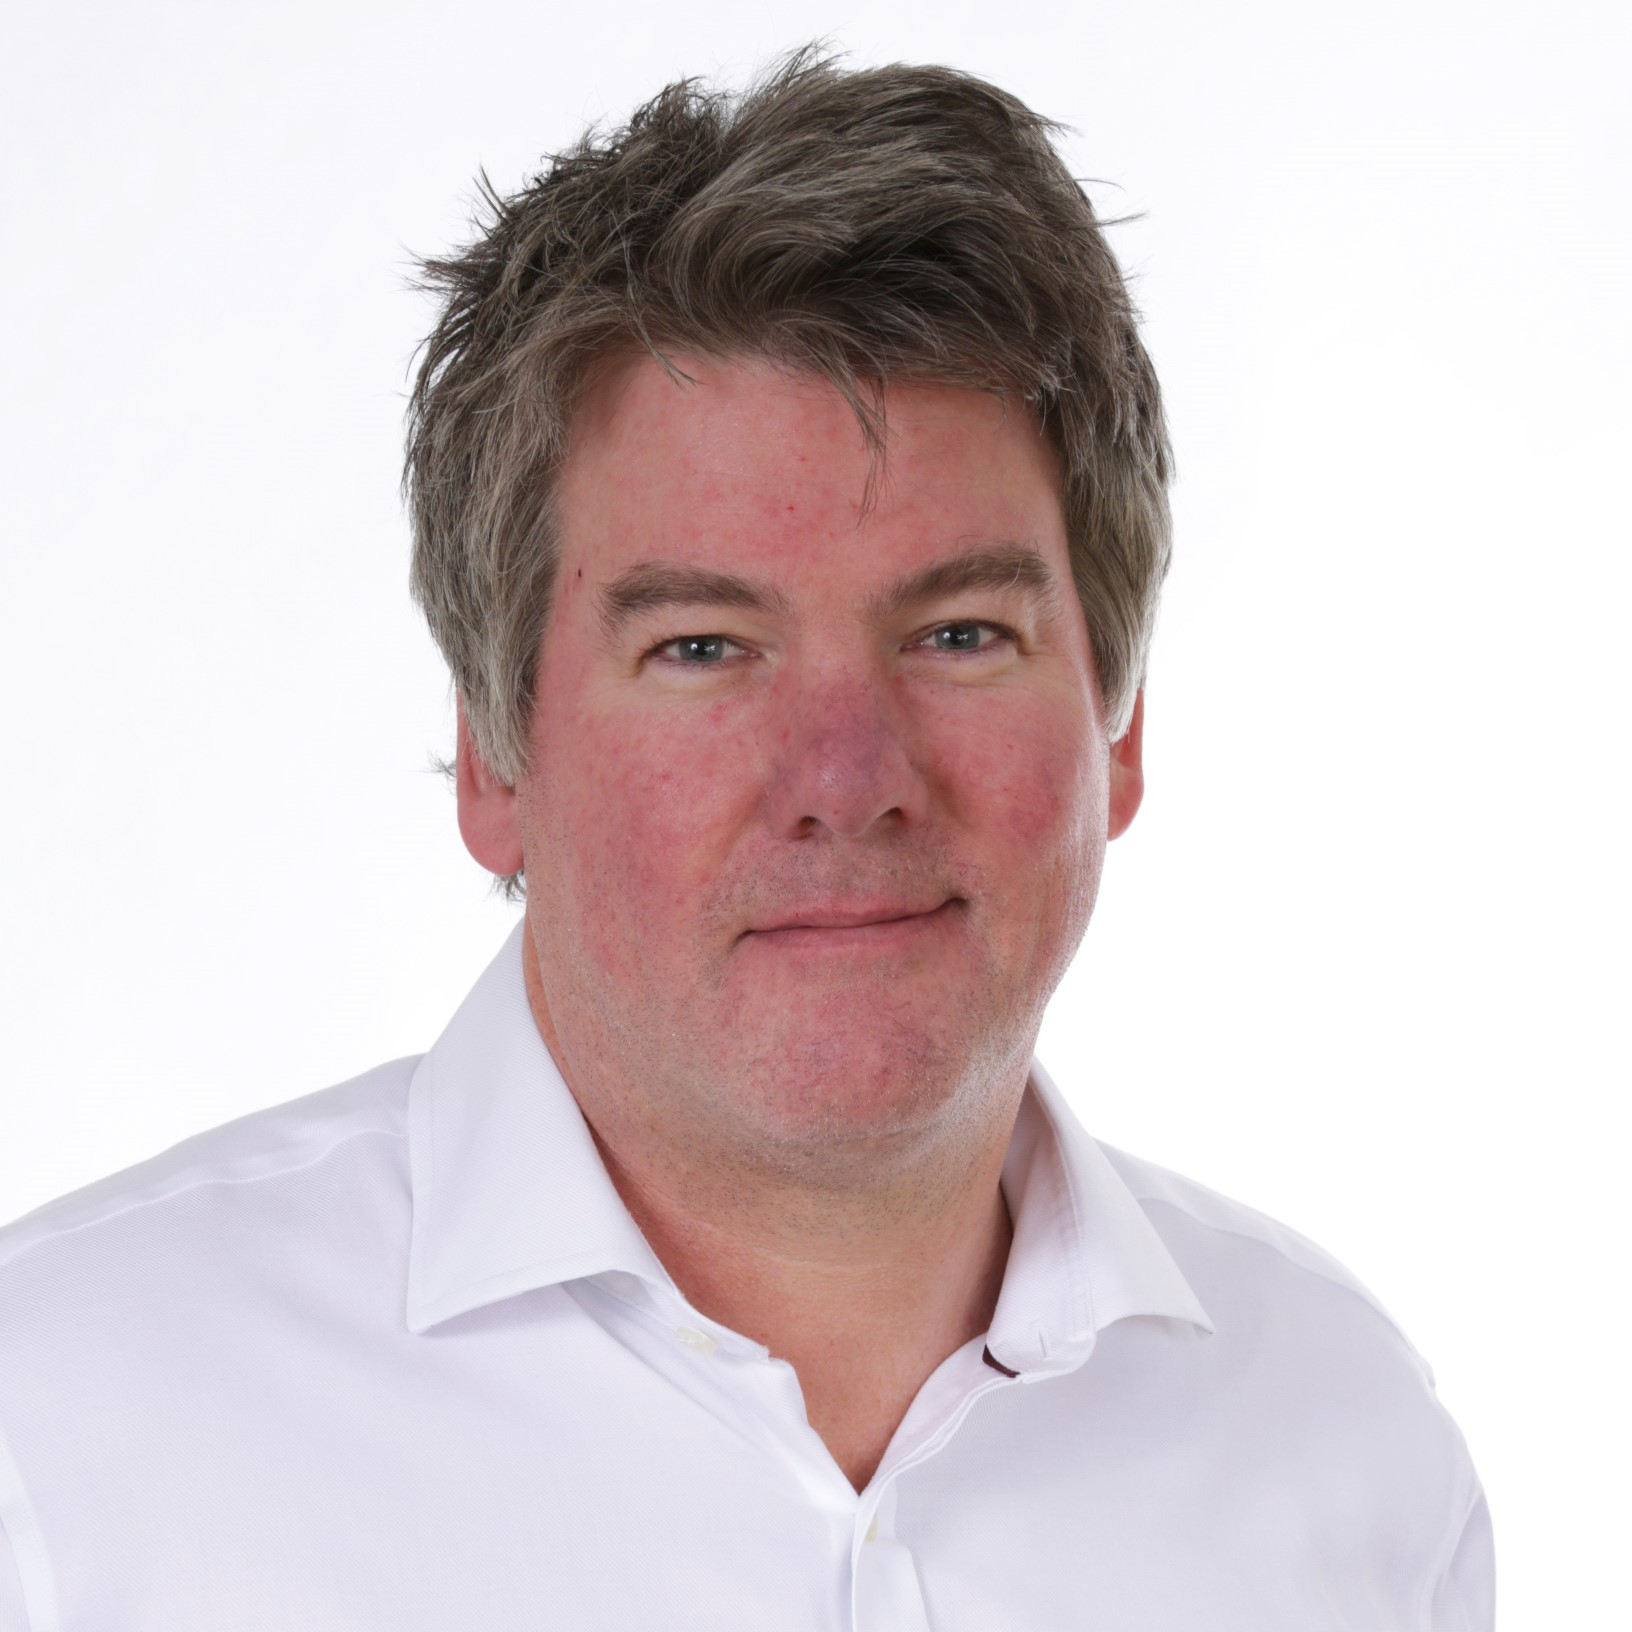 Ian Crosby - Sales and Marketing Director at Zytronic